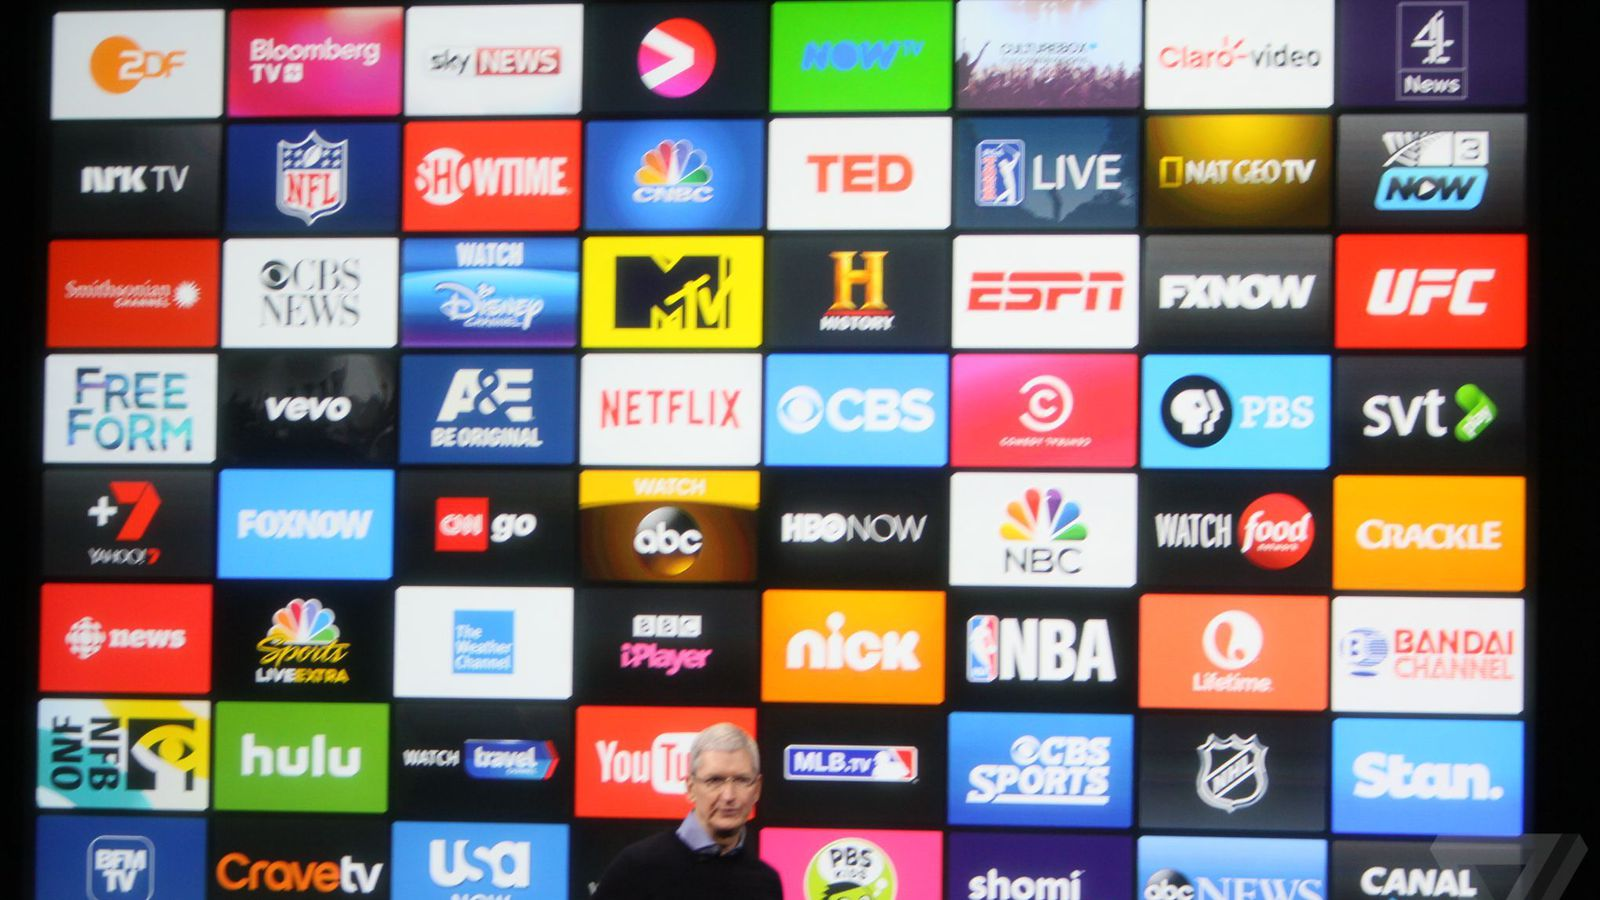 podcast app iphone the new apple tv already has 5 000 apps the verge 5000